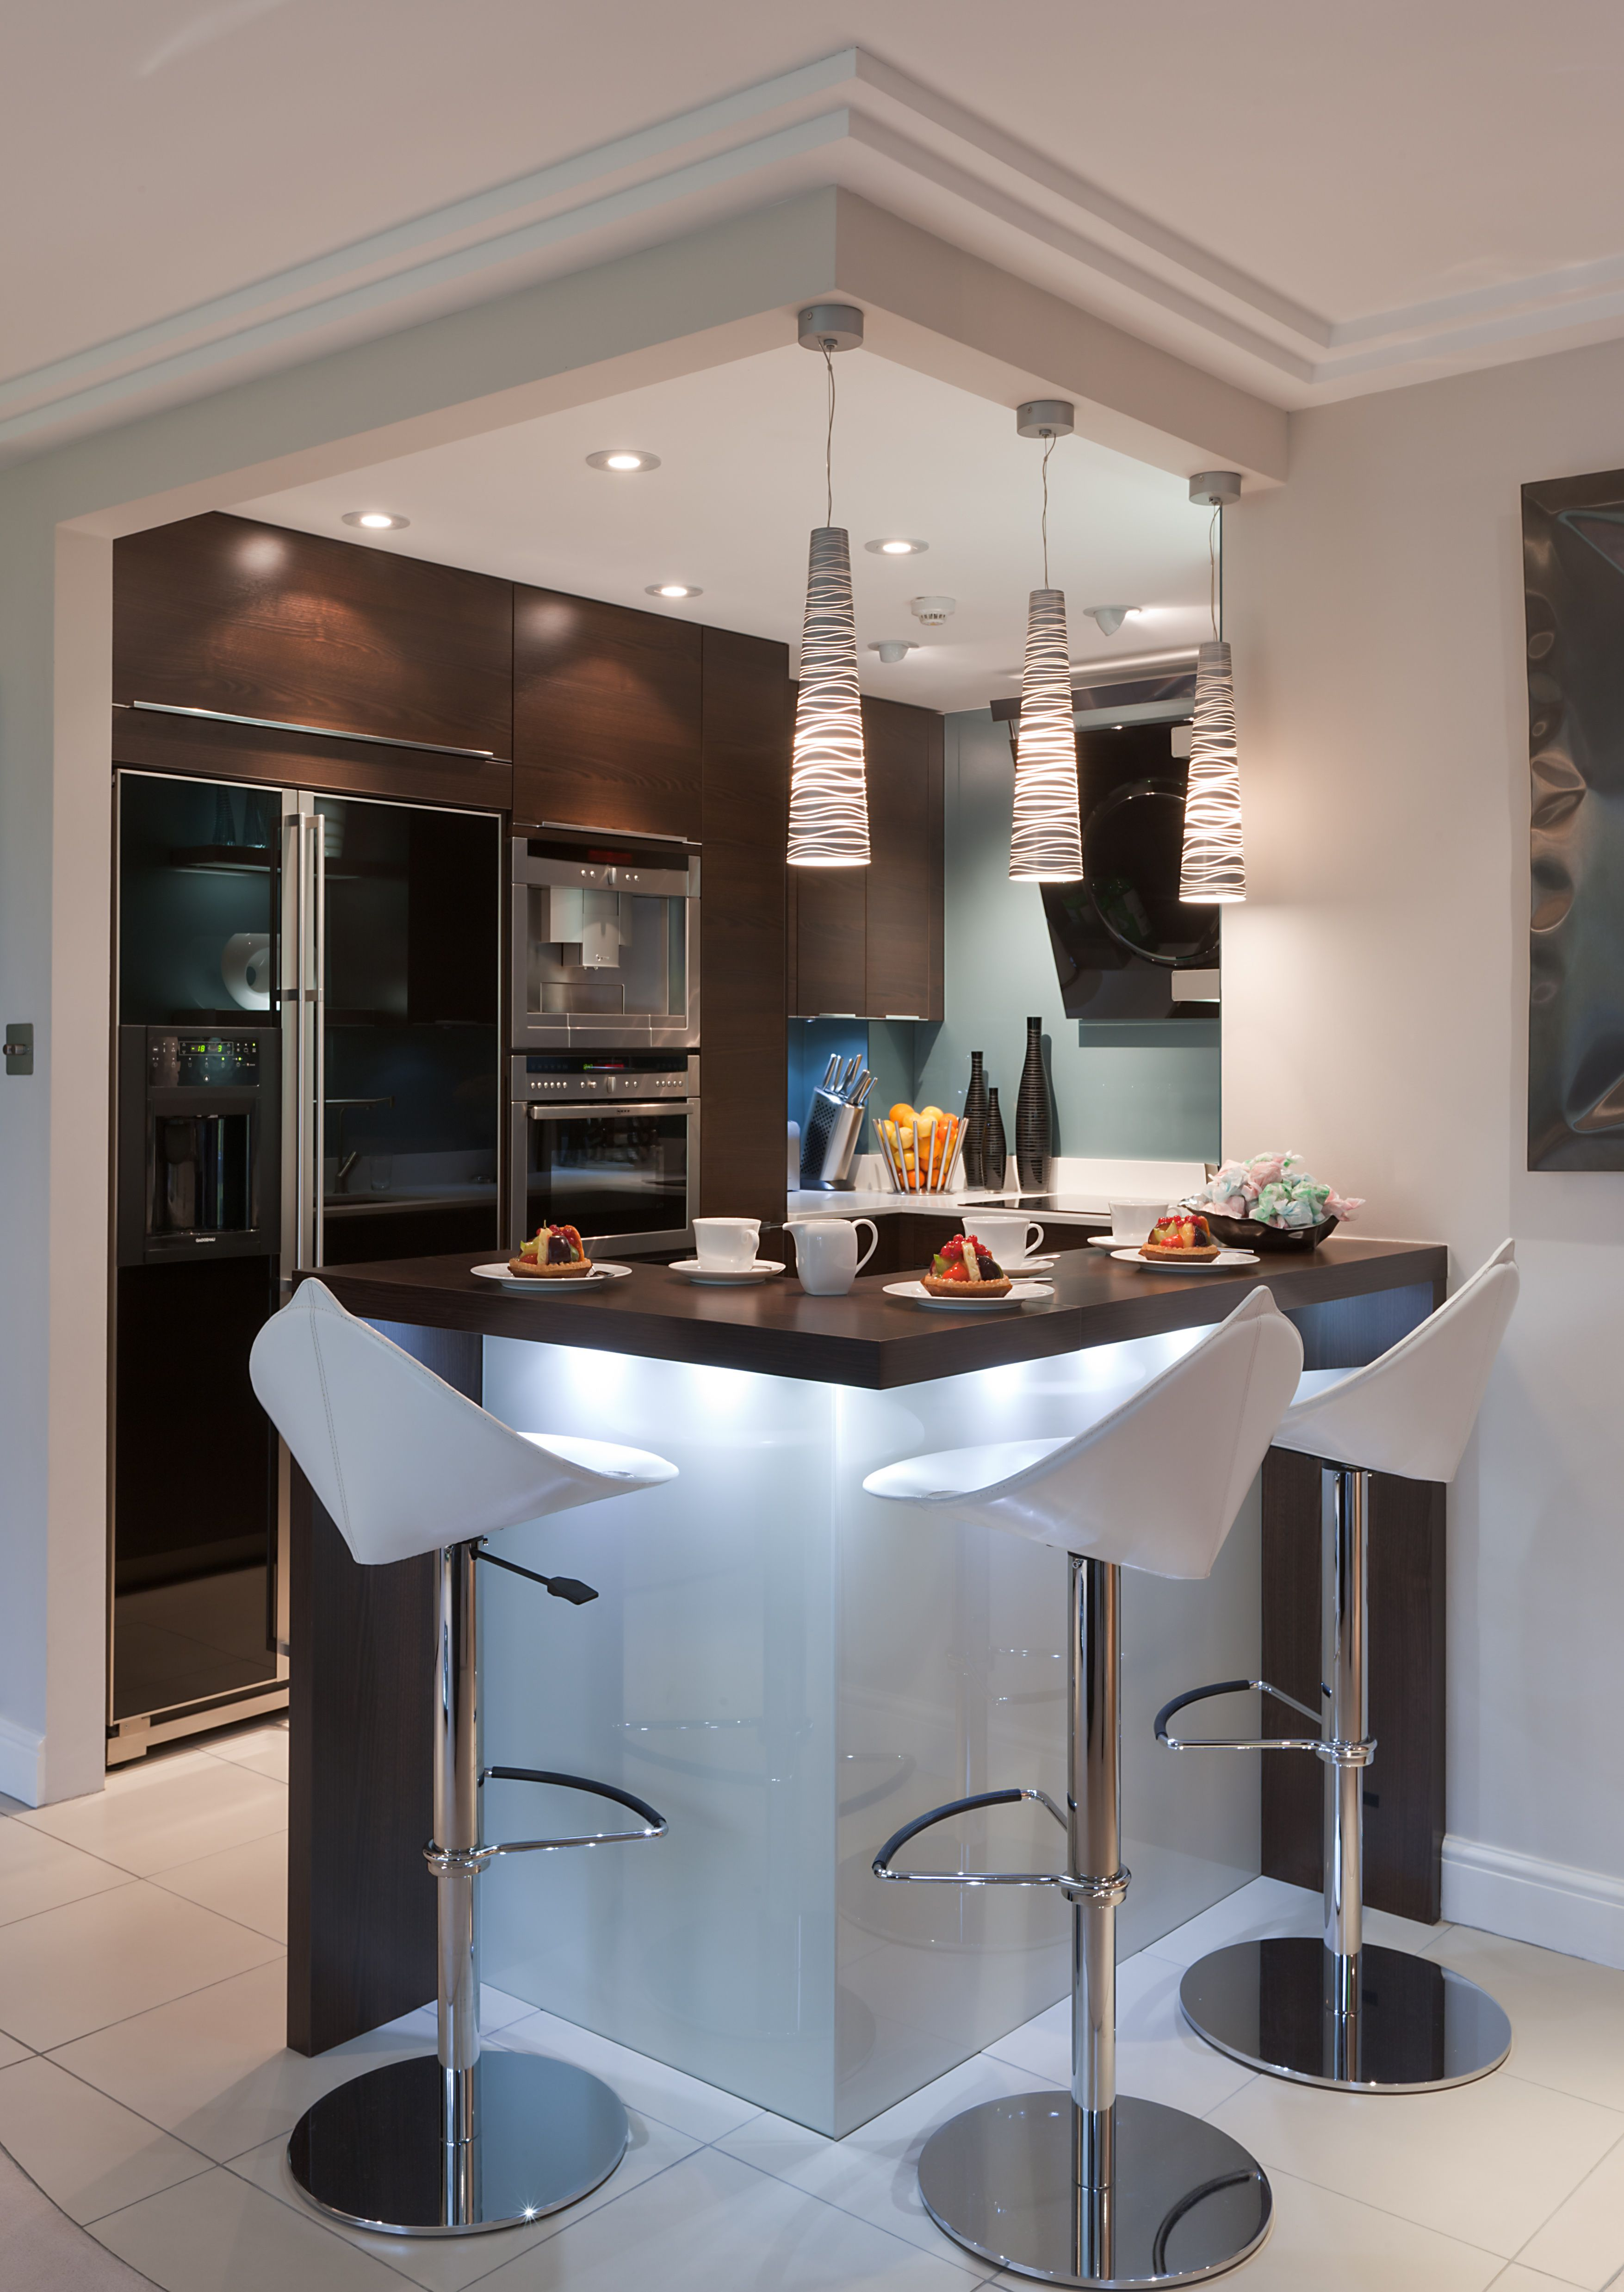 Good A Compact Kitchen With Clever Space For Stools At The Counter